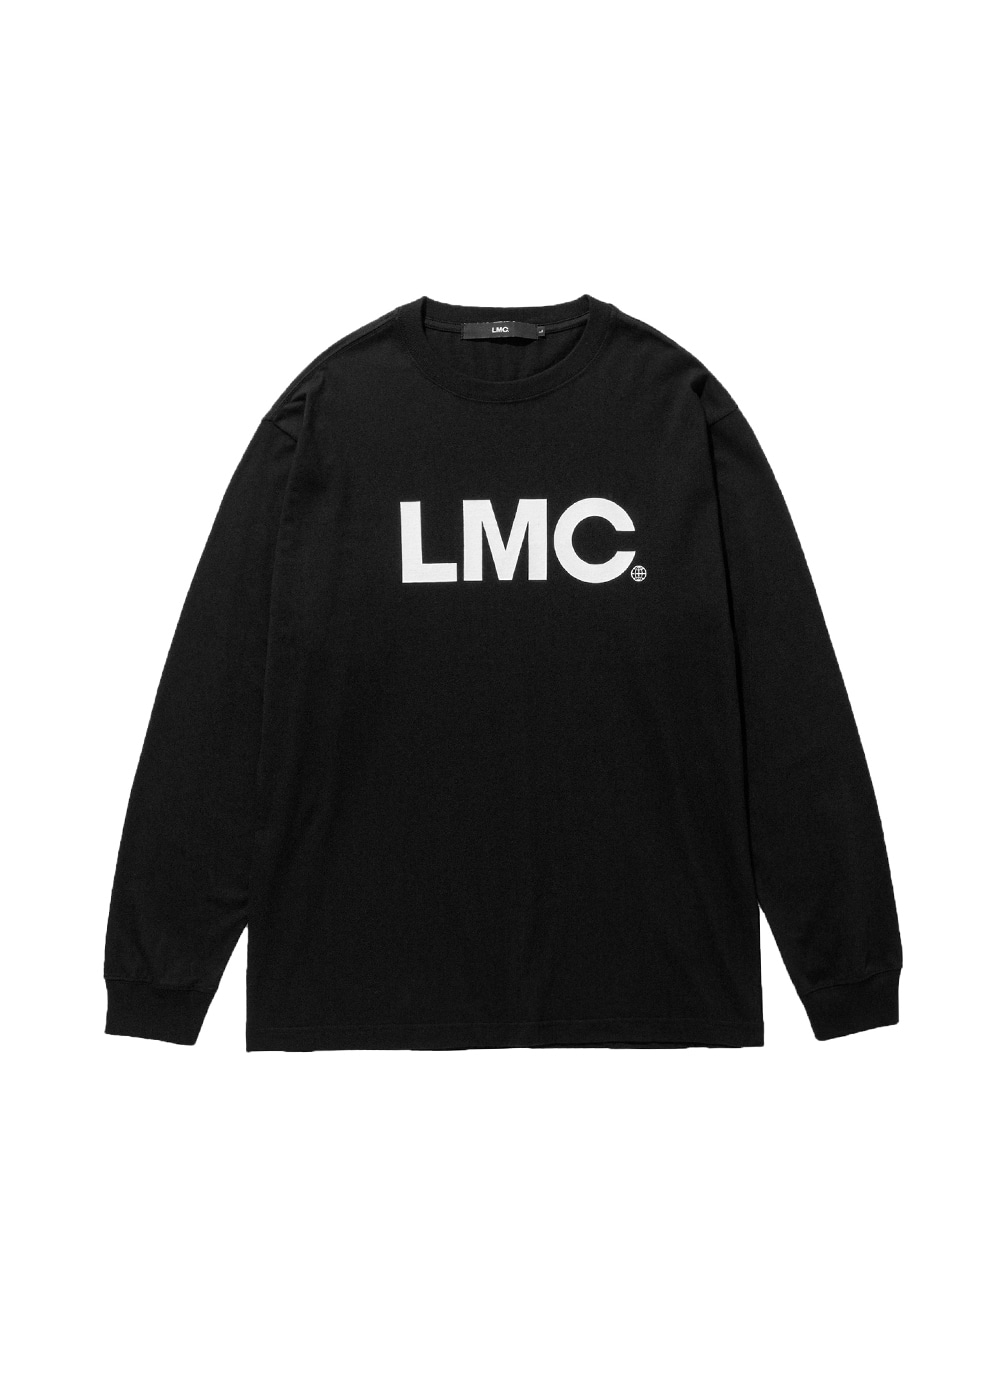 LMC OG LONG SLV TEE black